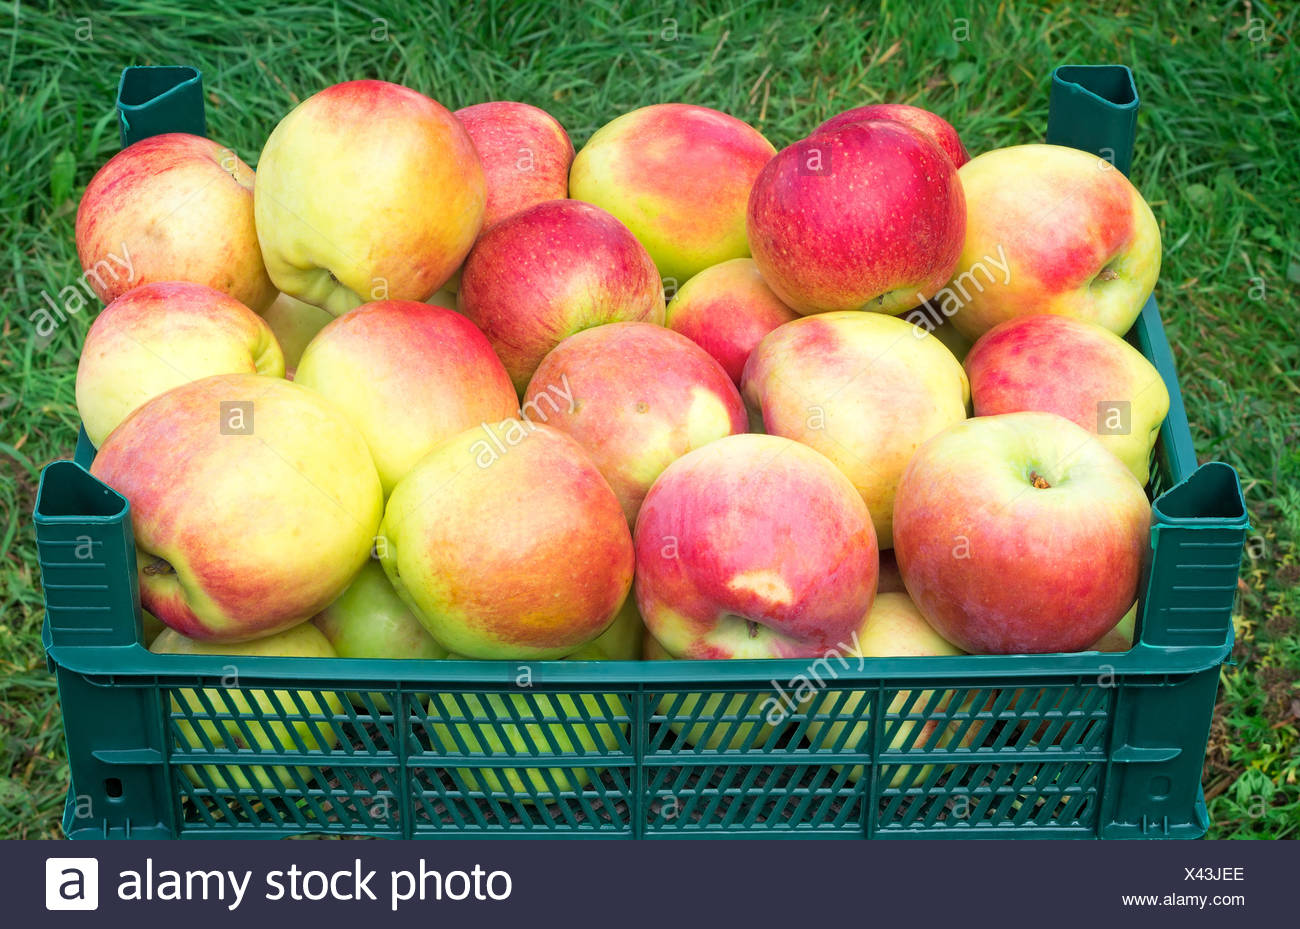 Large Mature Apples In The Container For Storage Stock Photo ...